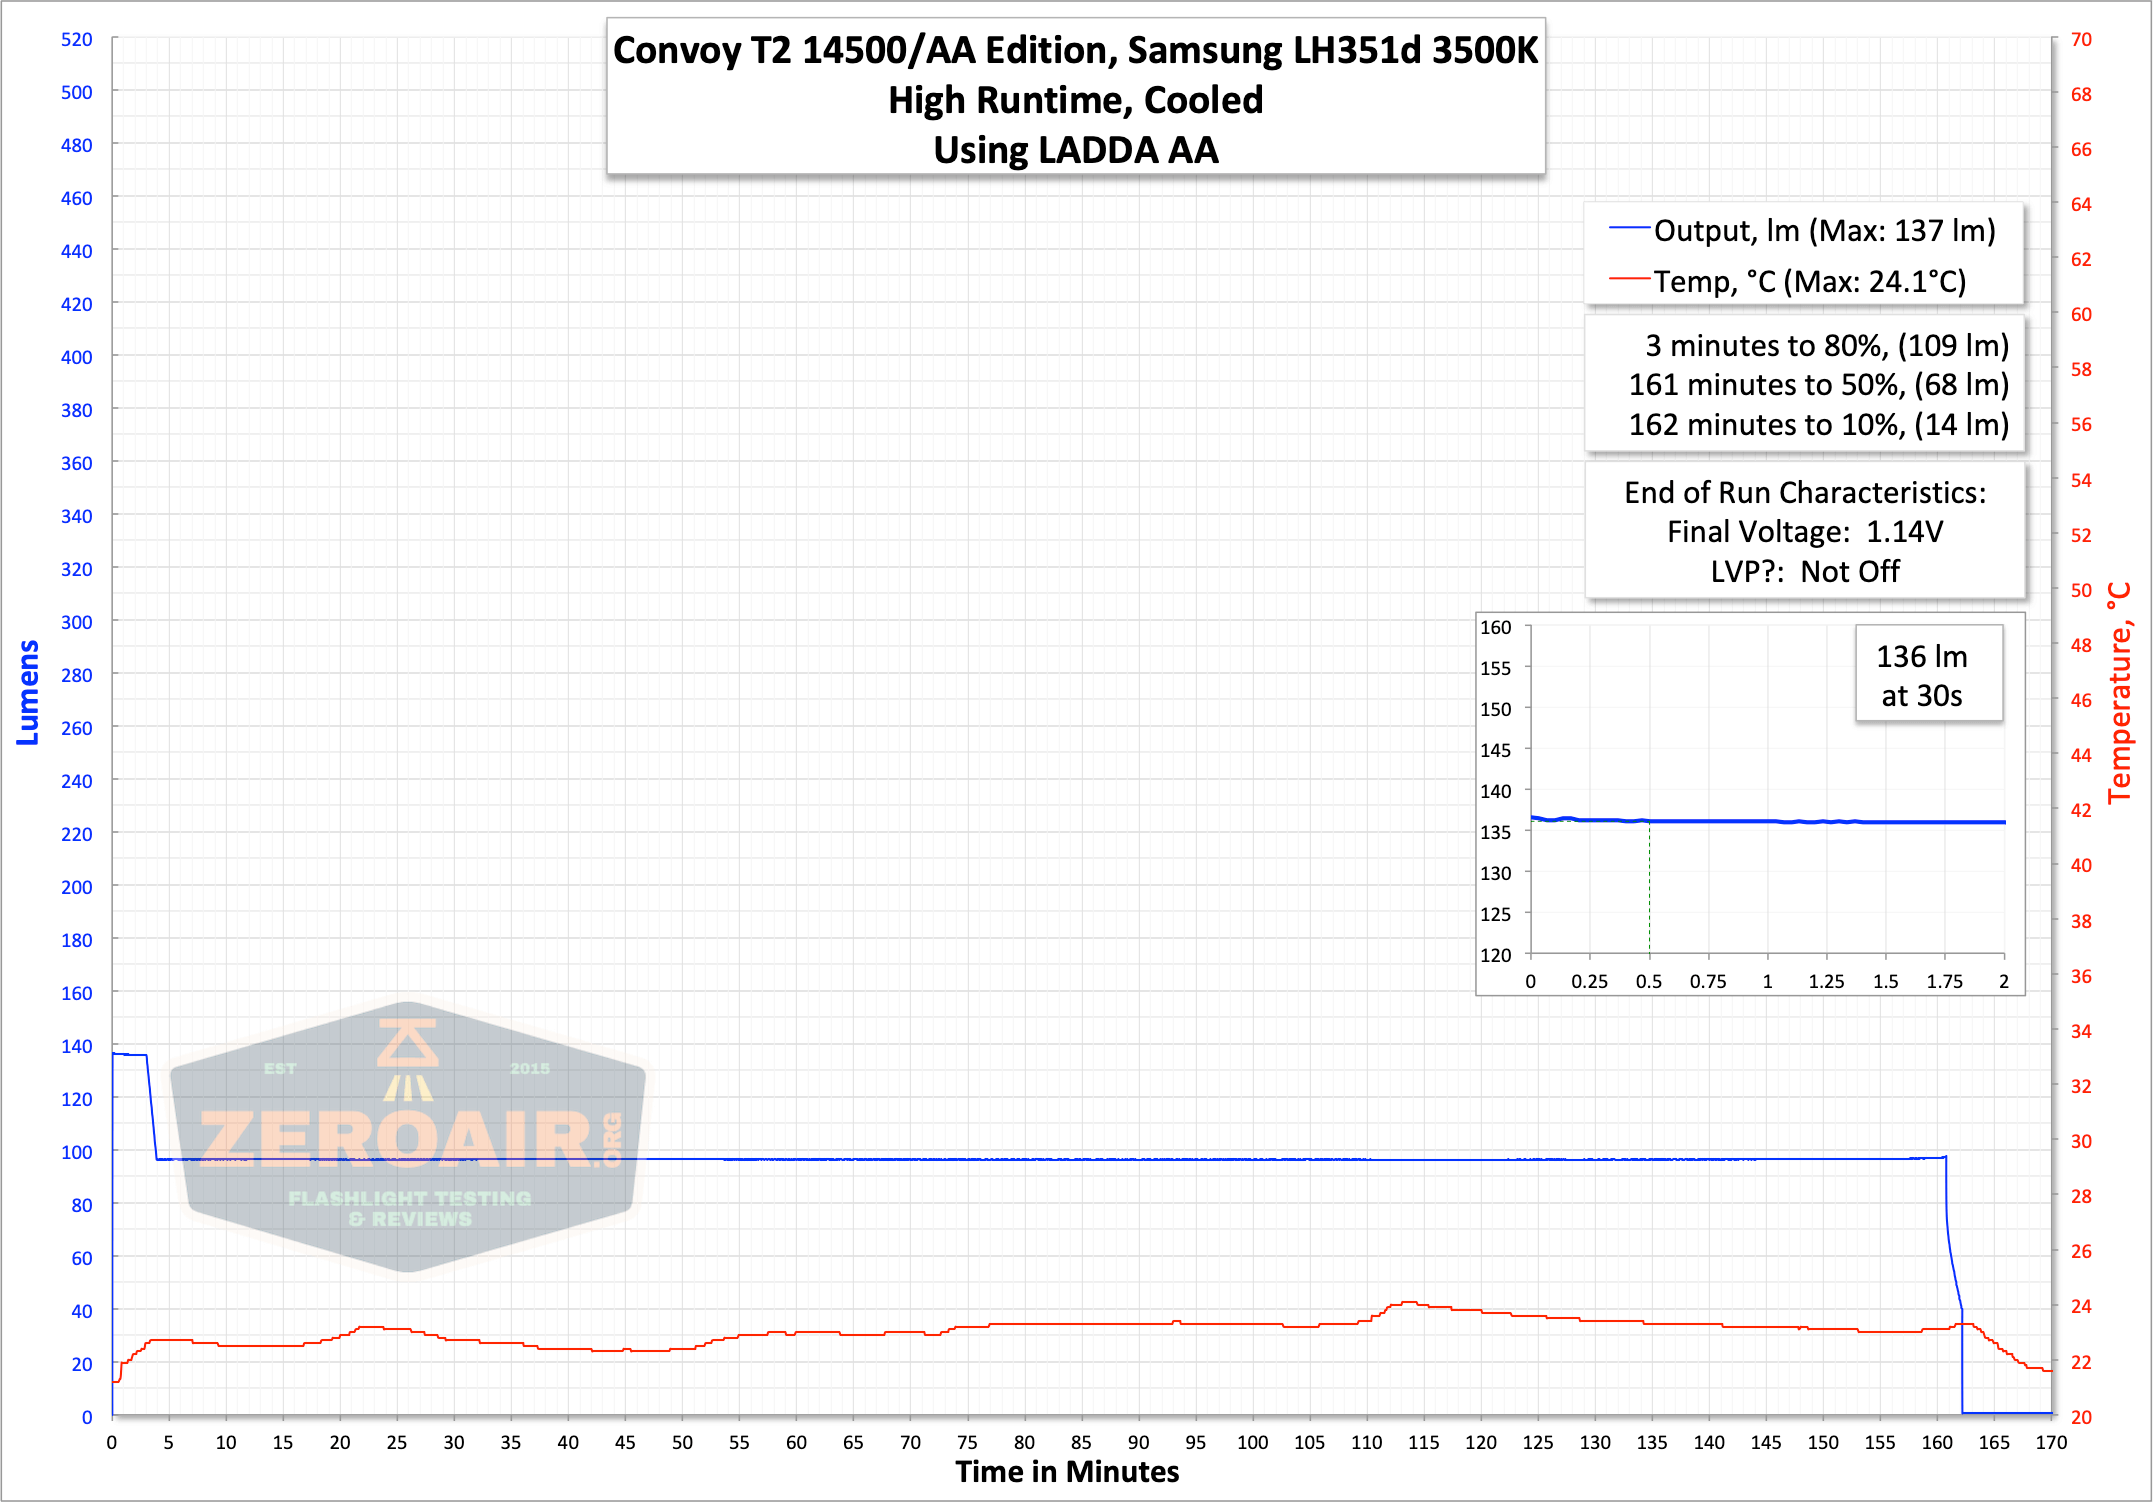 convoy t2 updated 14500/AA flashlight aa runtime graph high